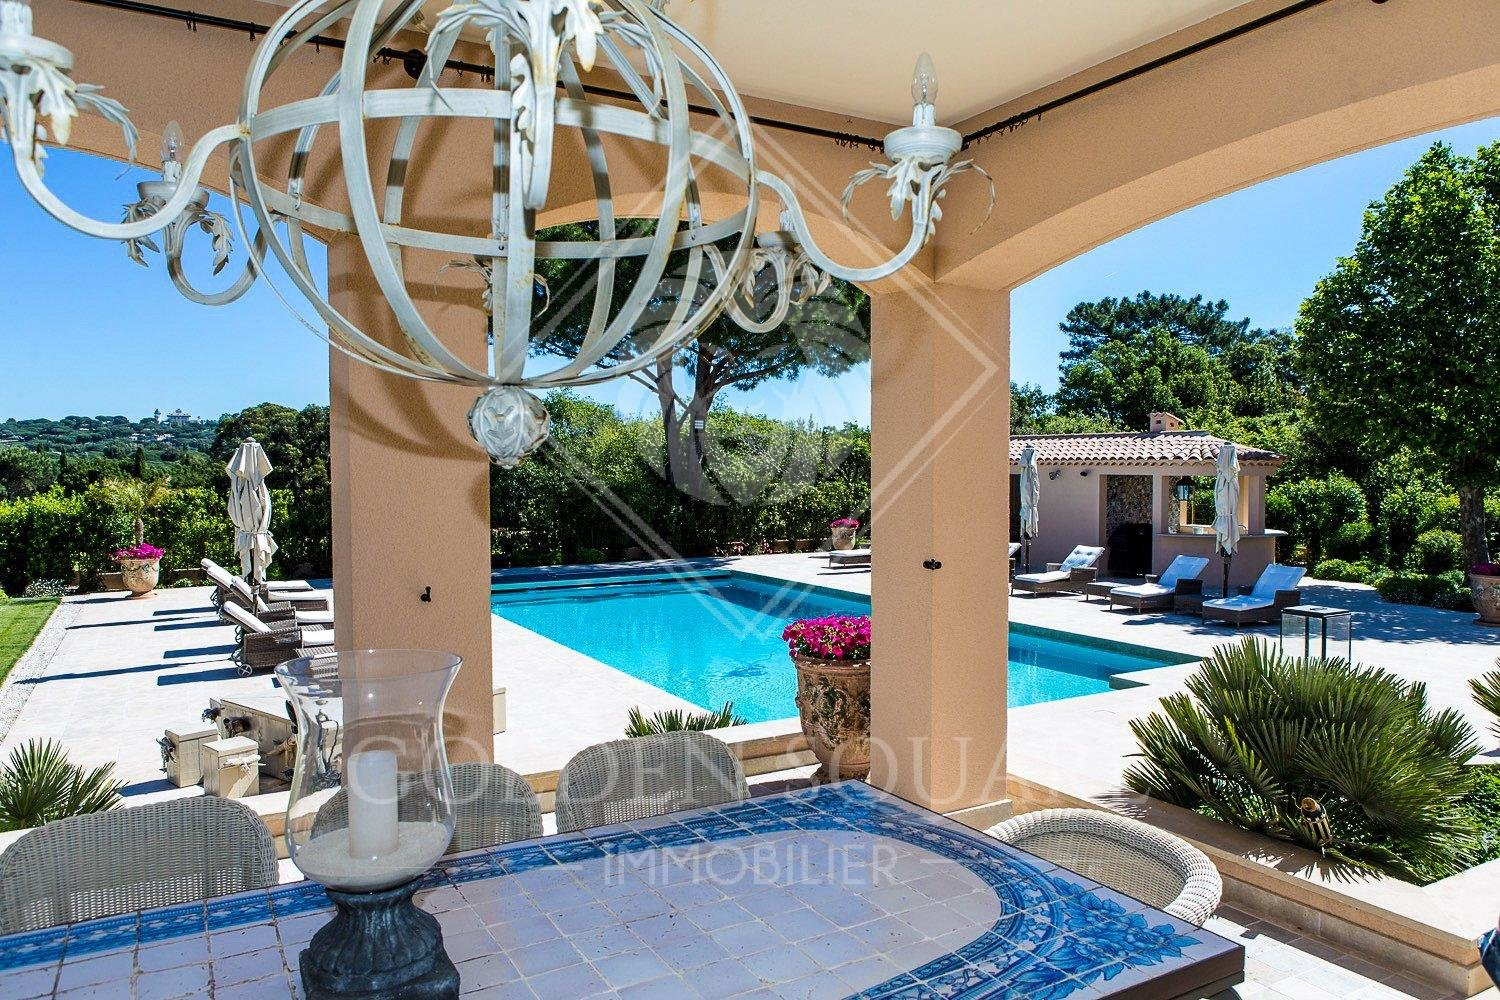 ST TROPEZ - 5 BEDROOM - EXCEPTIONAL PROPERTY